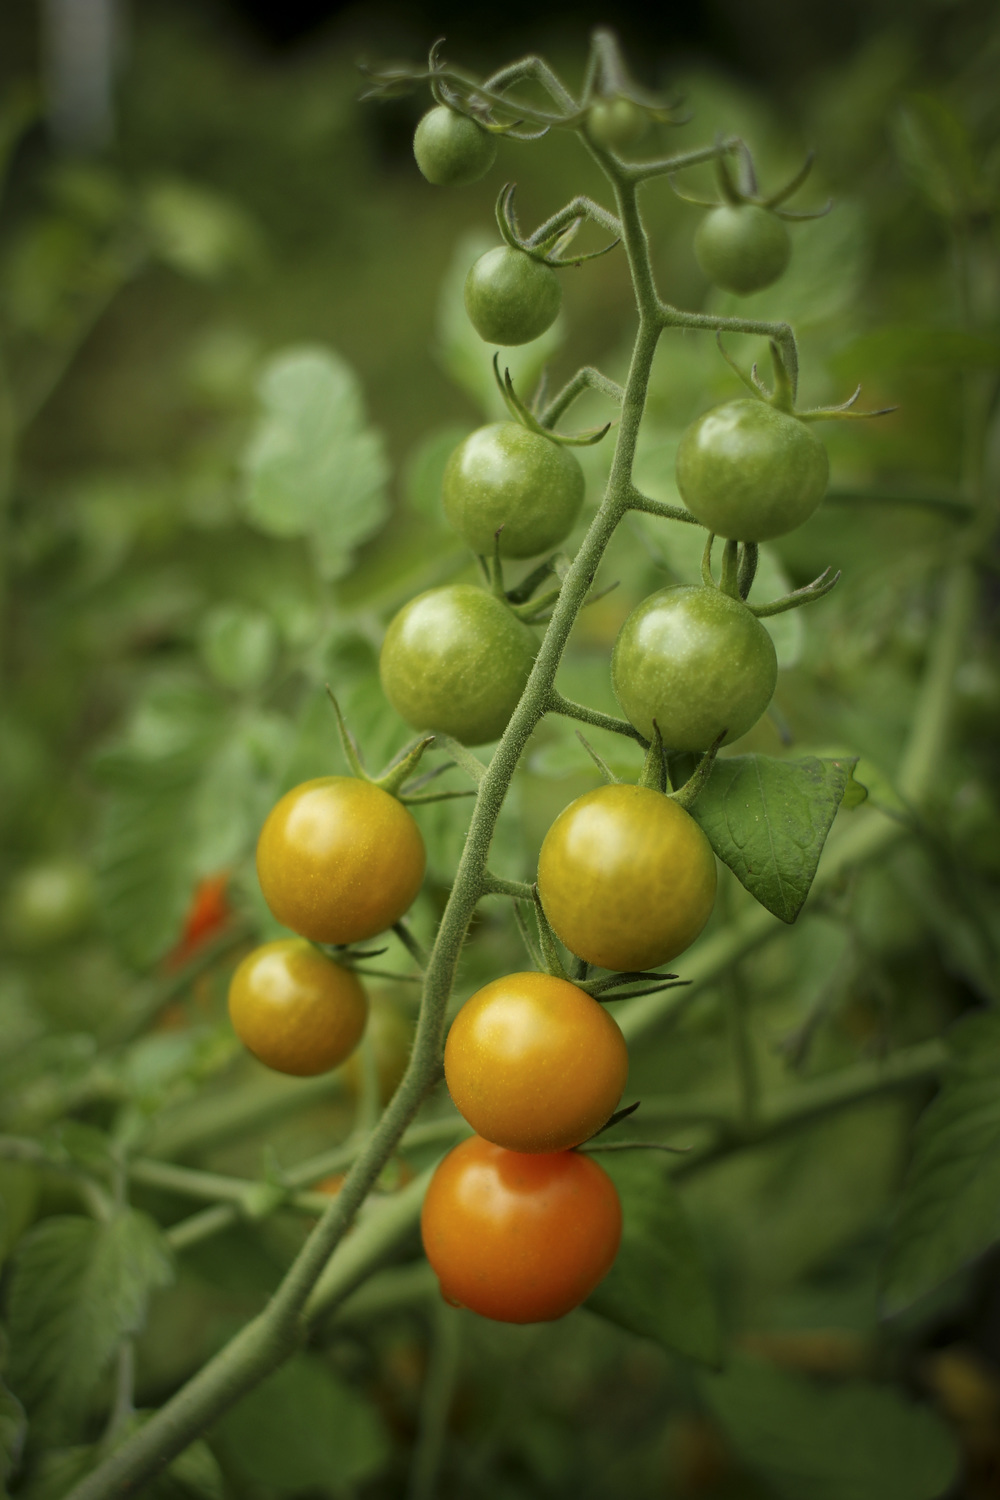 Sungold tomatoes are ripening in a rainbow of colors in our garden.